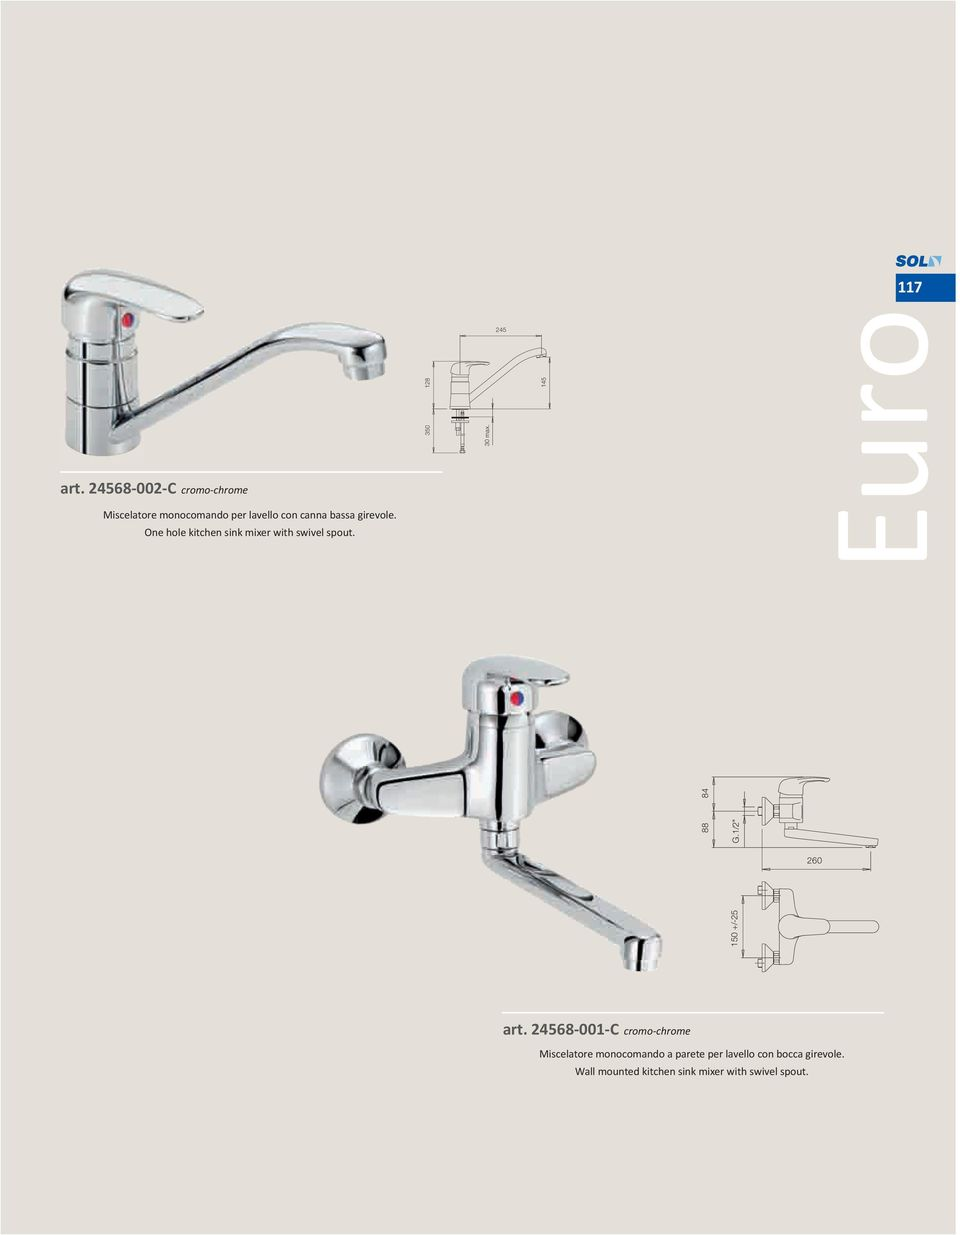 One hole kitchen sink mixer with swivel spout. 128 350 30 max.